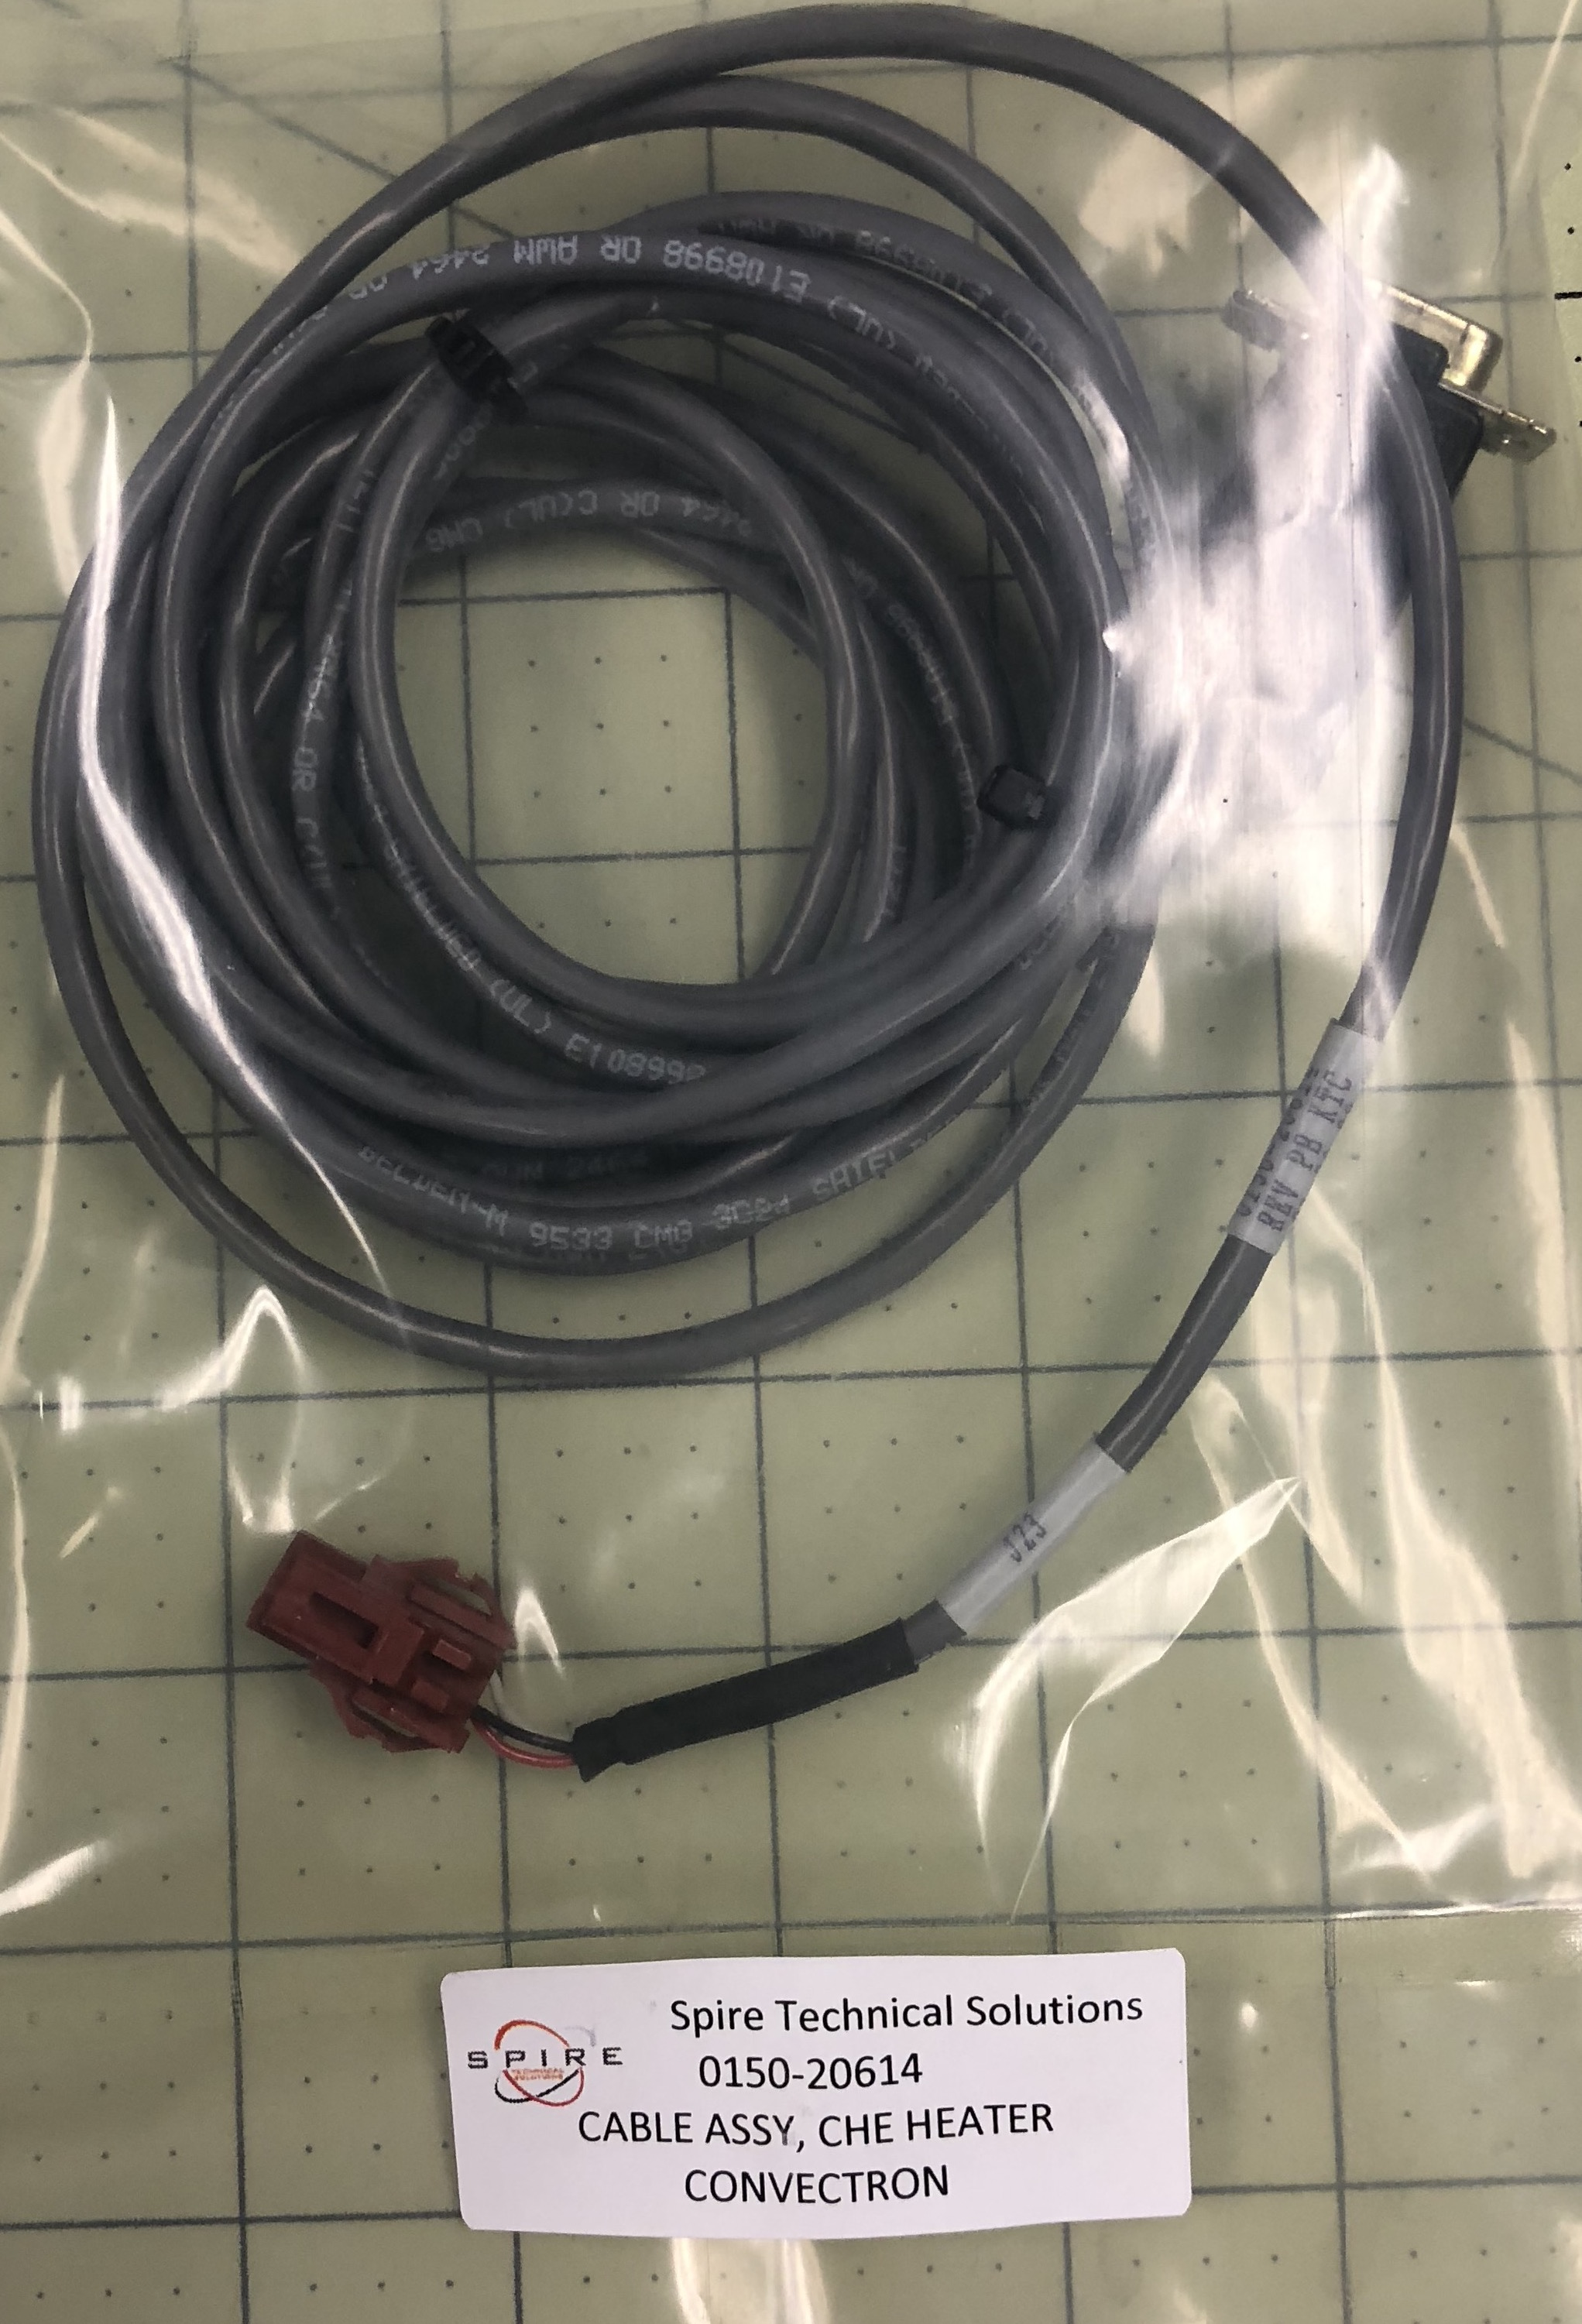 Cable Assy, CHE Htr Convectron